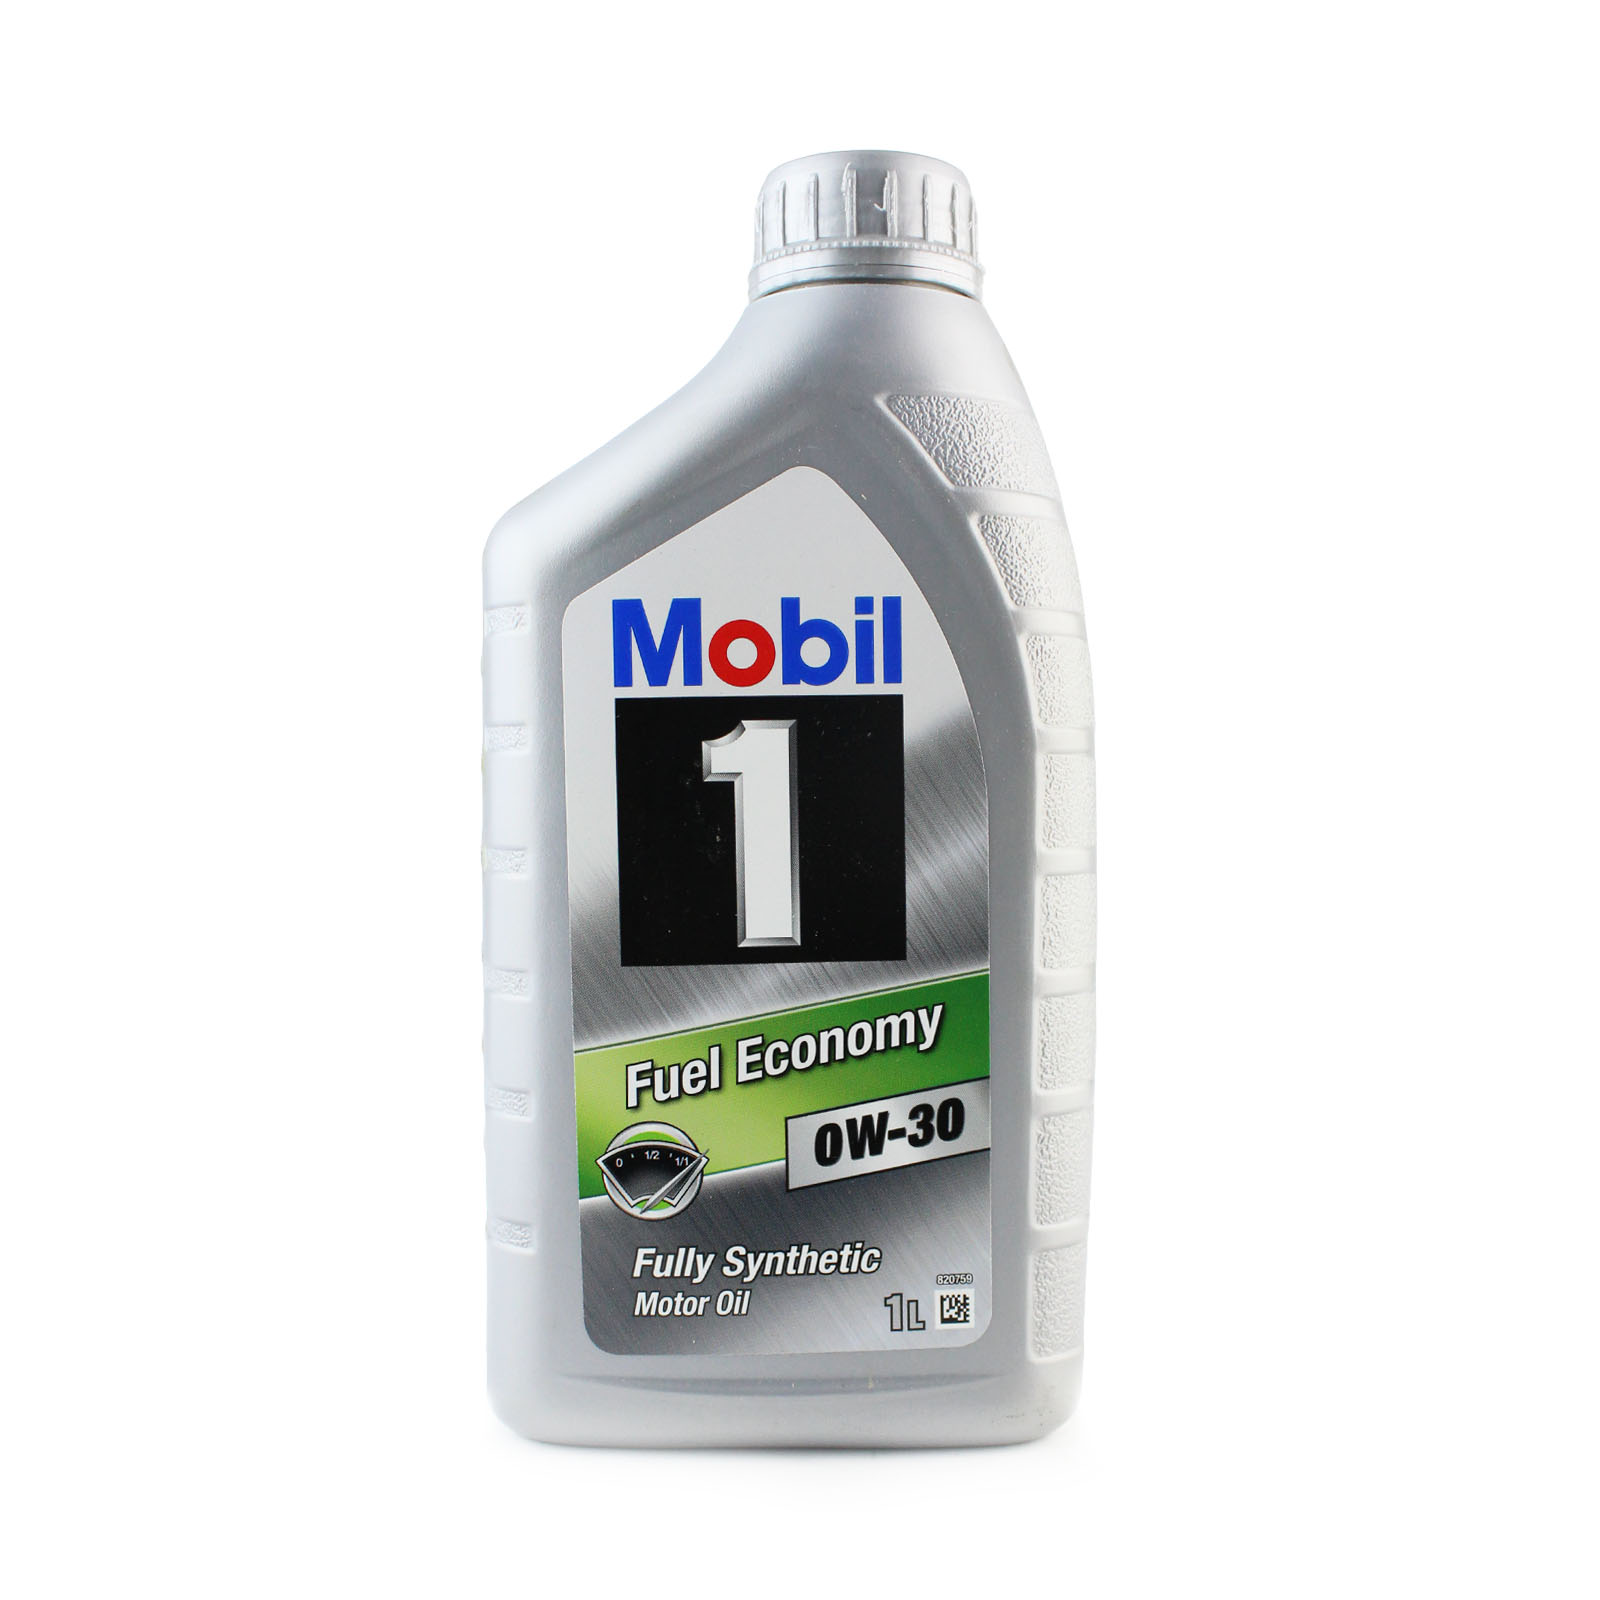 1 litre mobil 1 fuel economy 0w30 ford wss m2c913 a fully for Fully synthetic motor oil